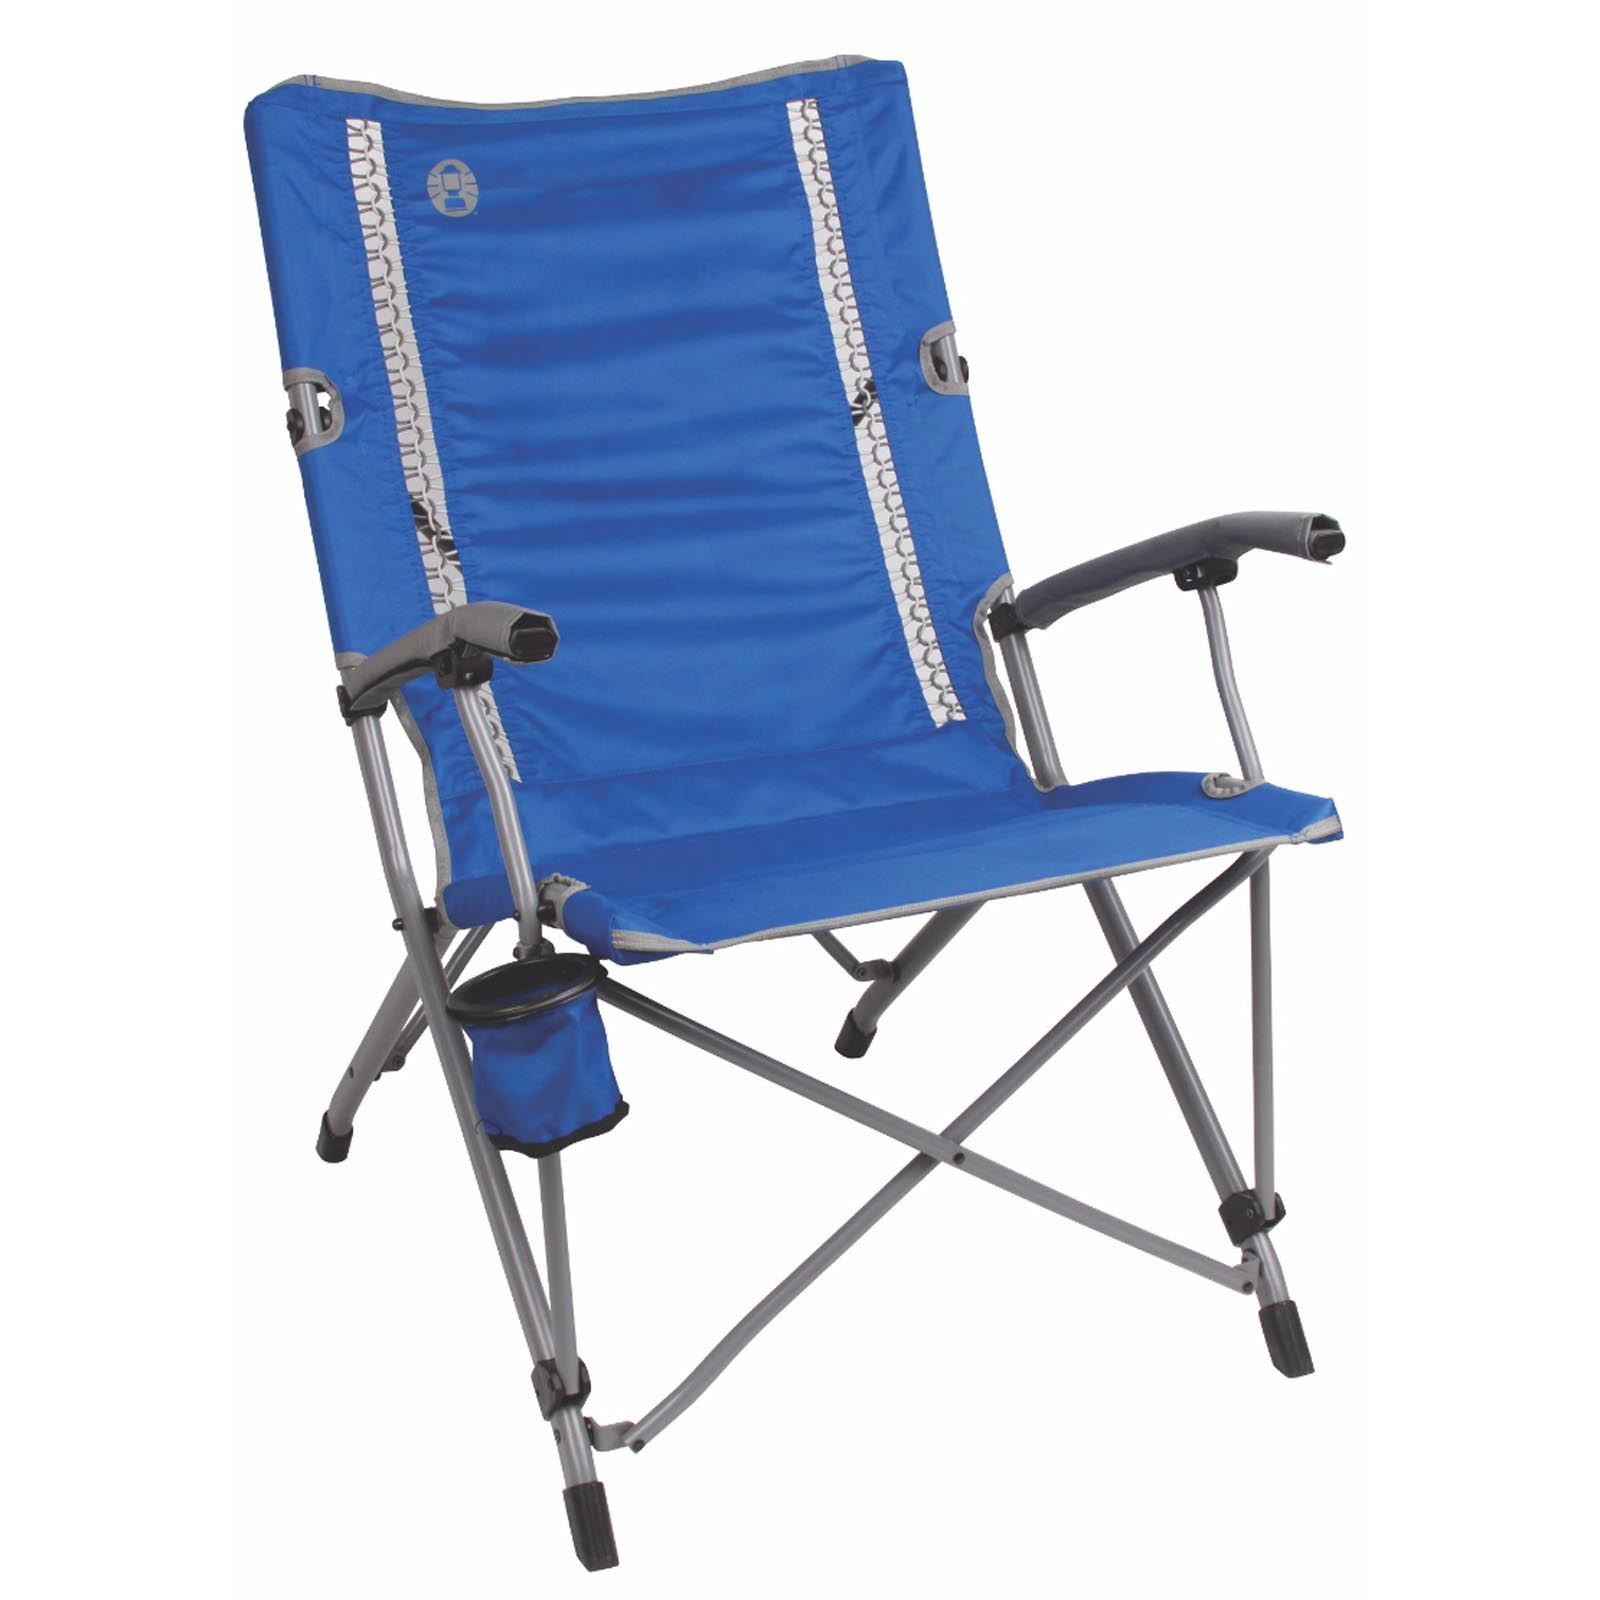 Coleman Comfortsmart InterLock Suspension Chair